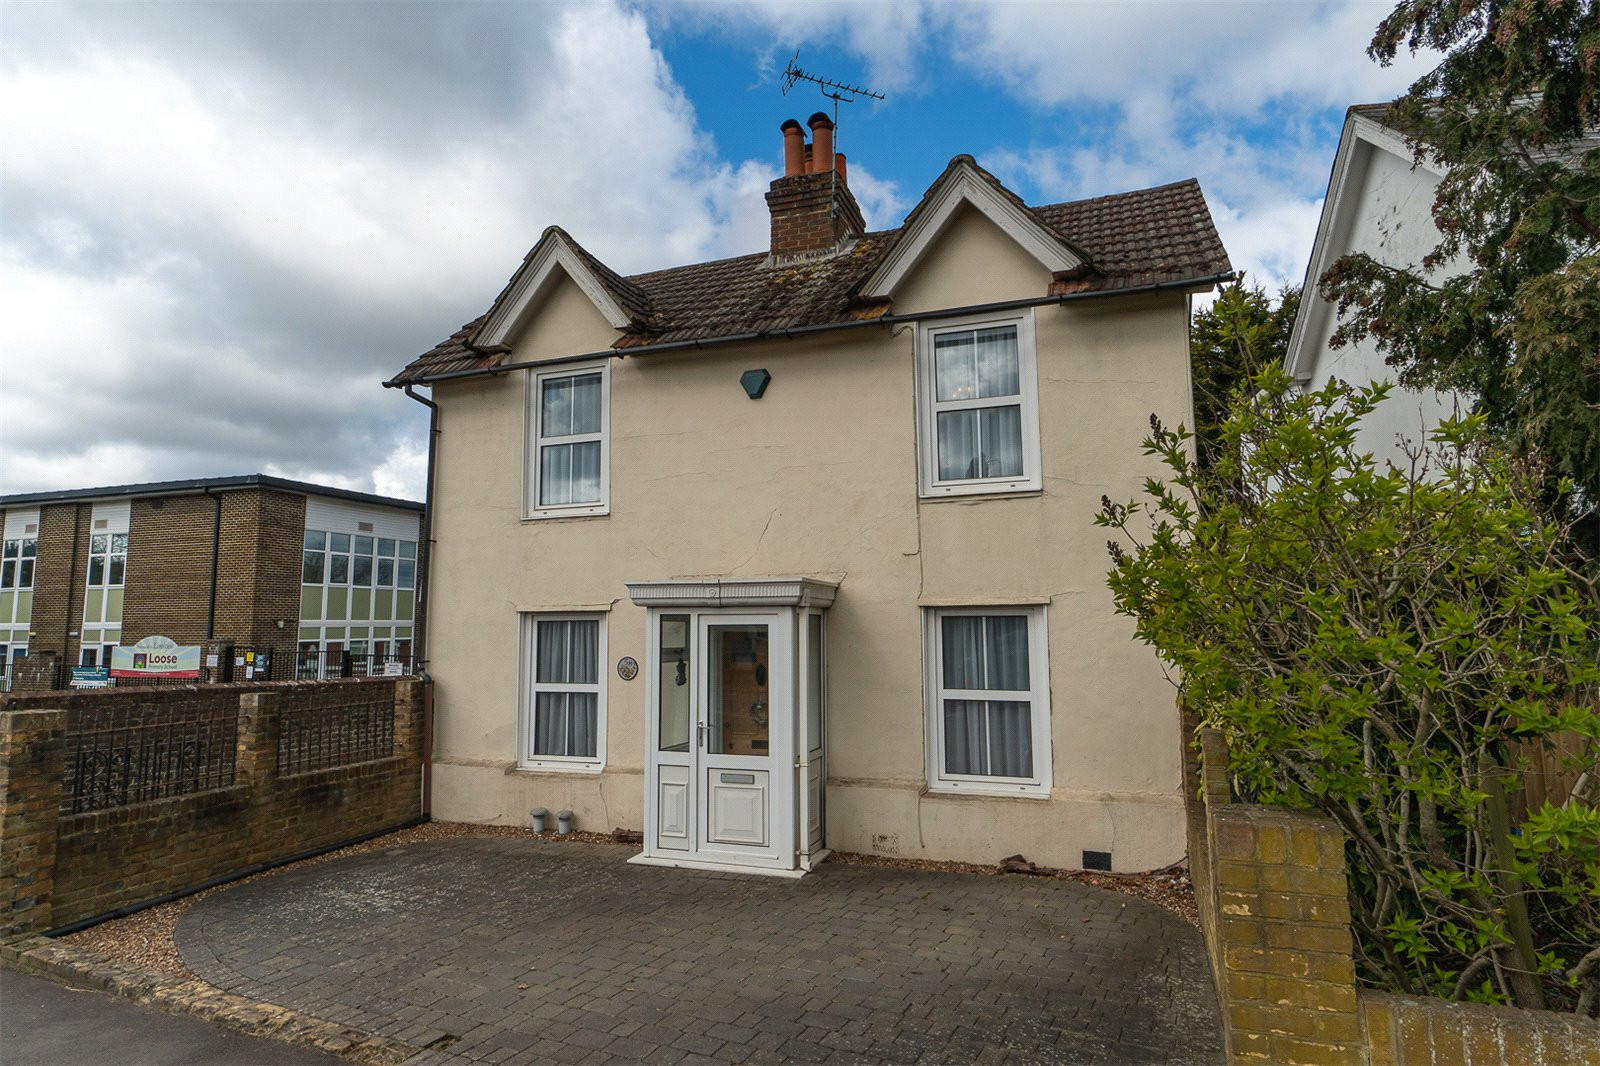 4 bed  for sale in Loose Road, Loose, ME15